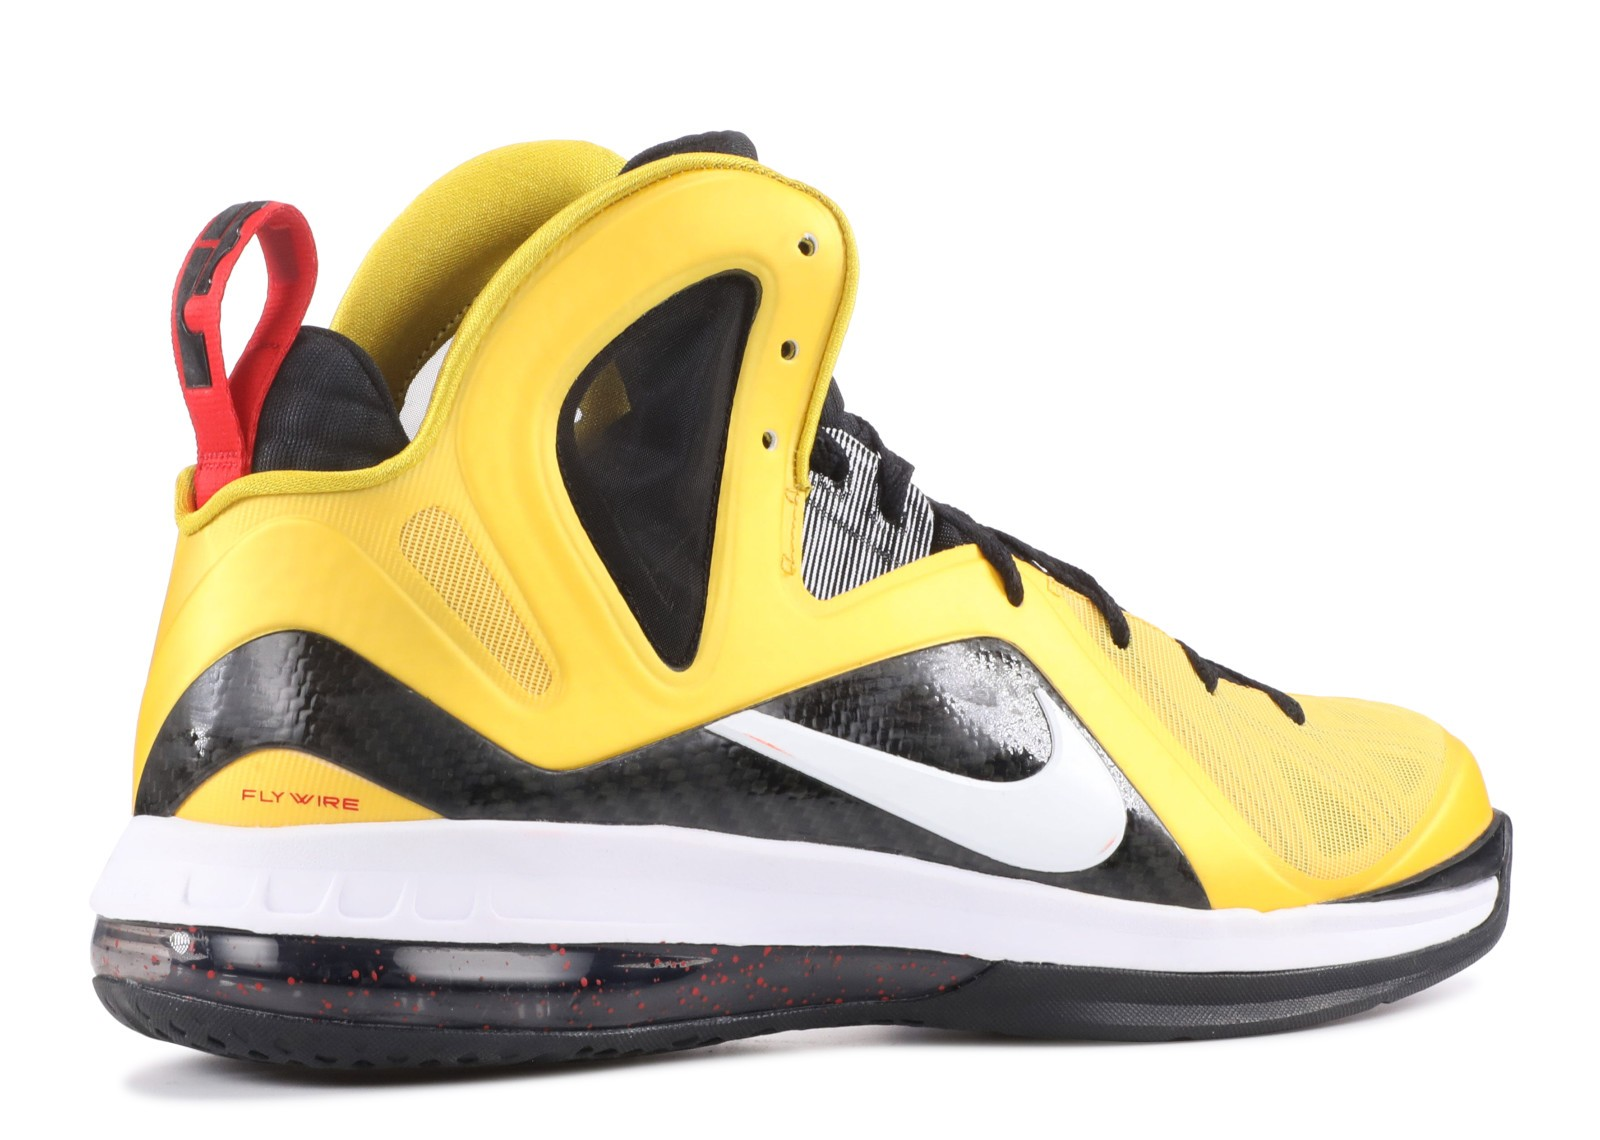 reputable site 70979 096cc ... Lebron 9 PS Elite Taxi Maize Black Varsity White Sport Red 516958-700  ...